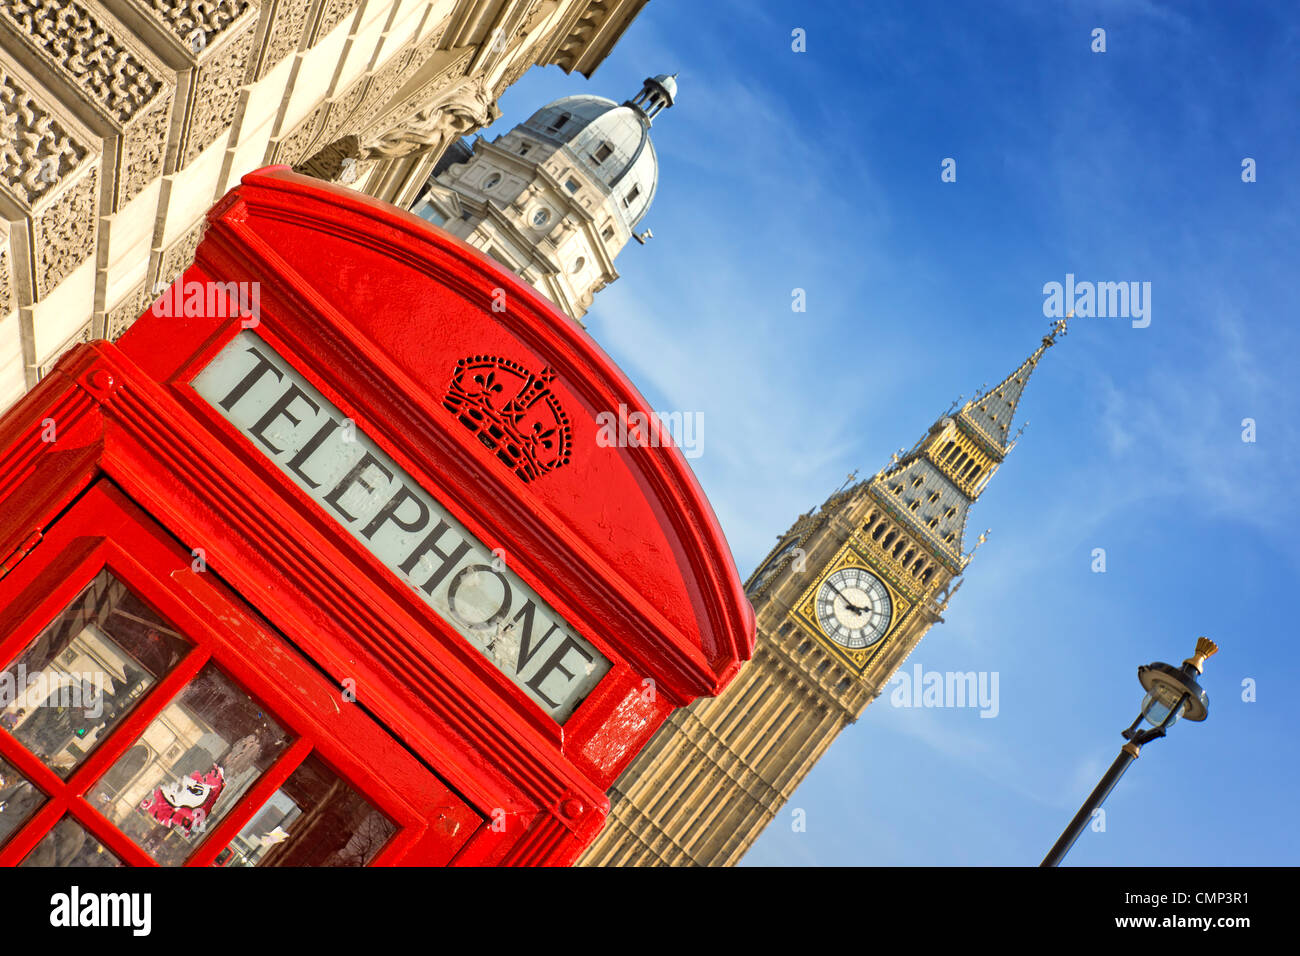 A bright red telephone box at an angle in front or Parliament in Westminster - Stock Image